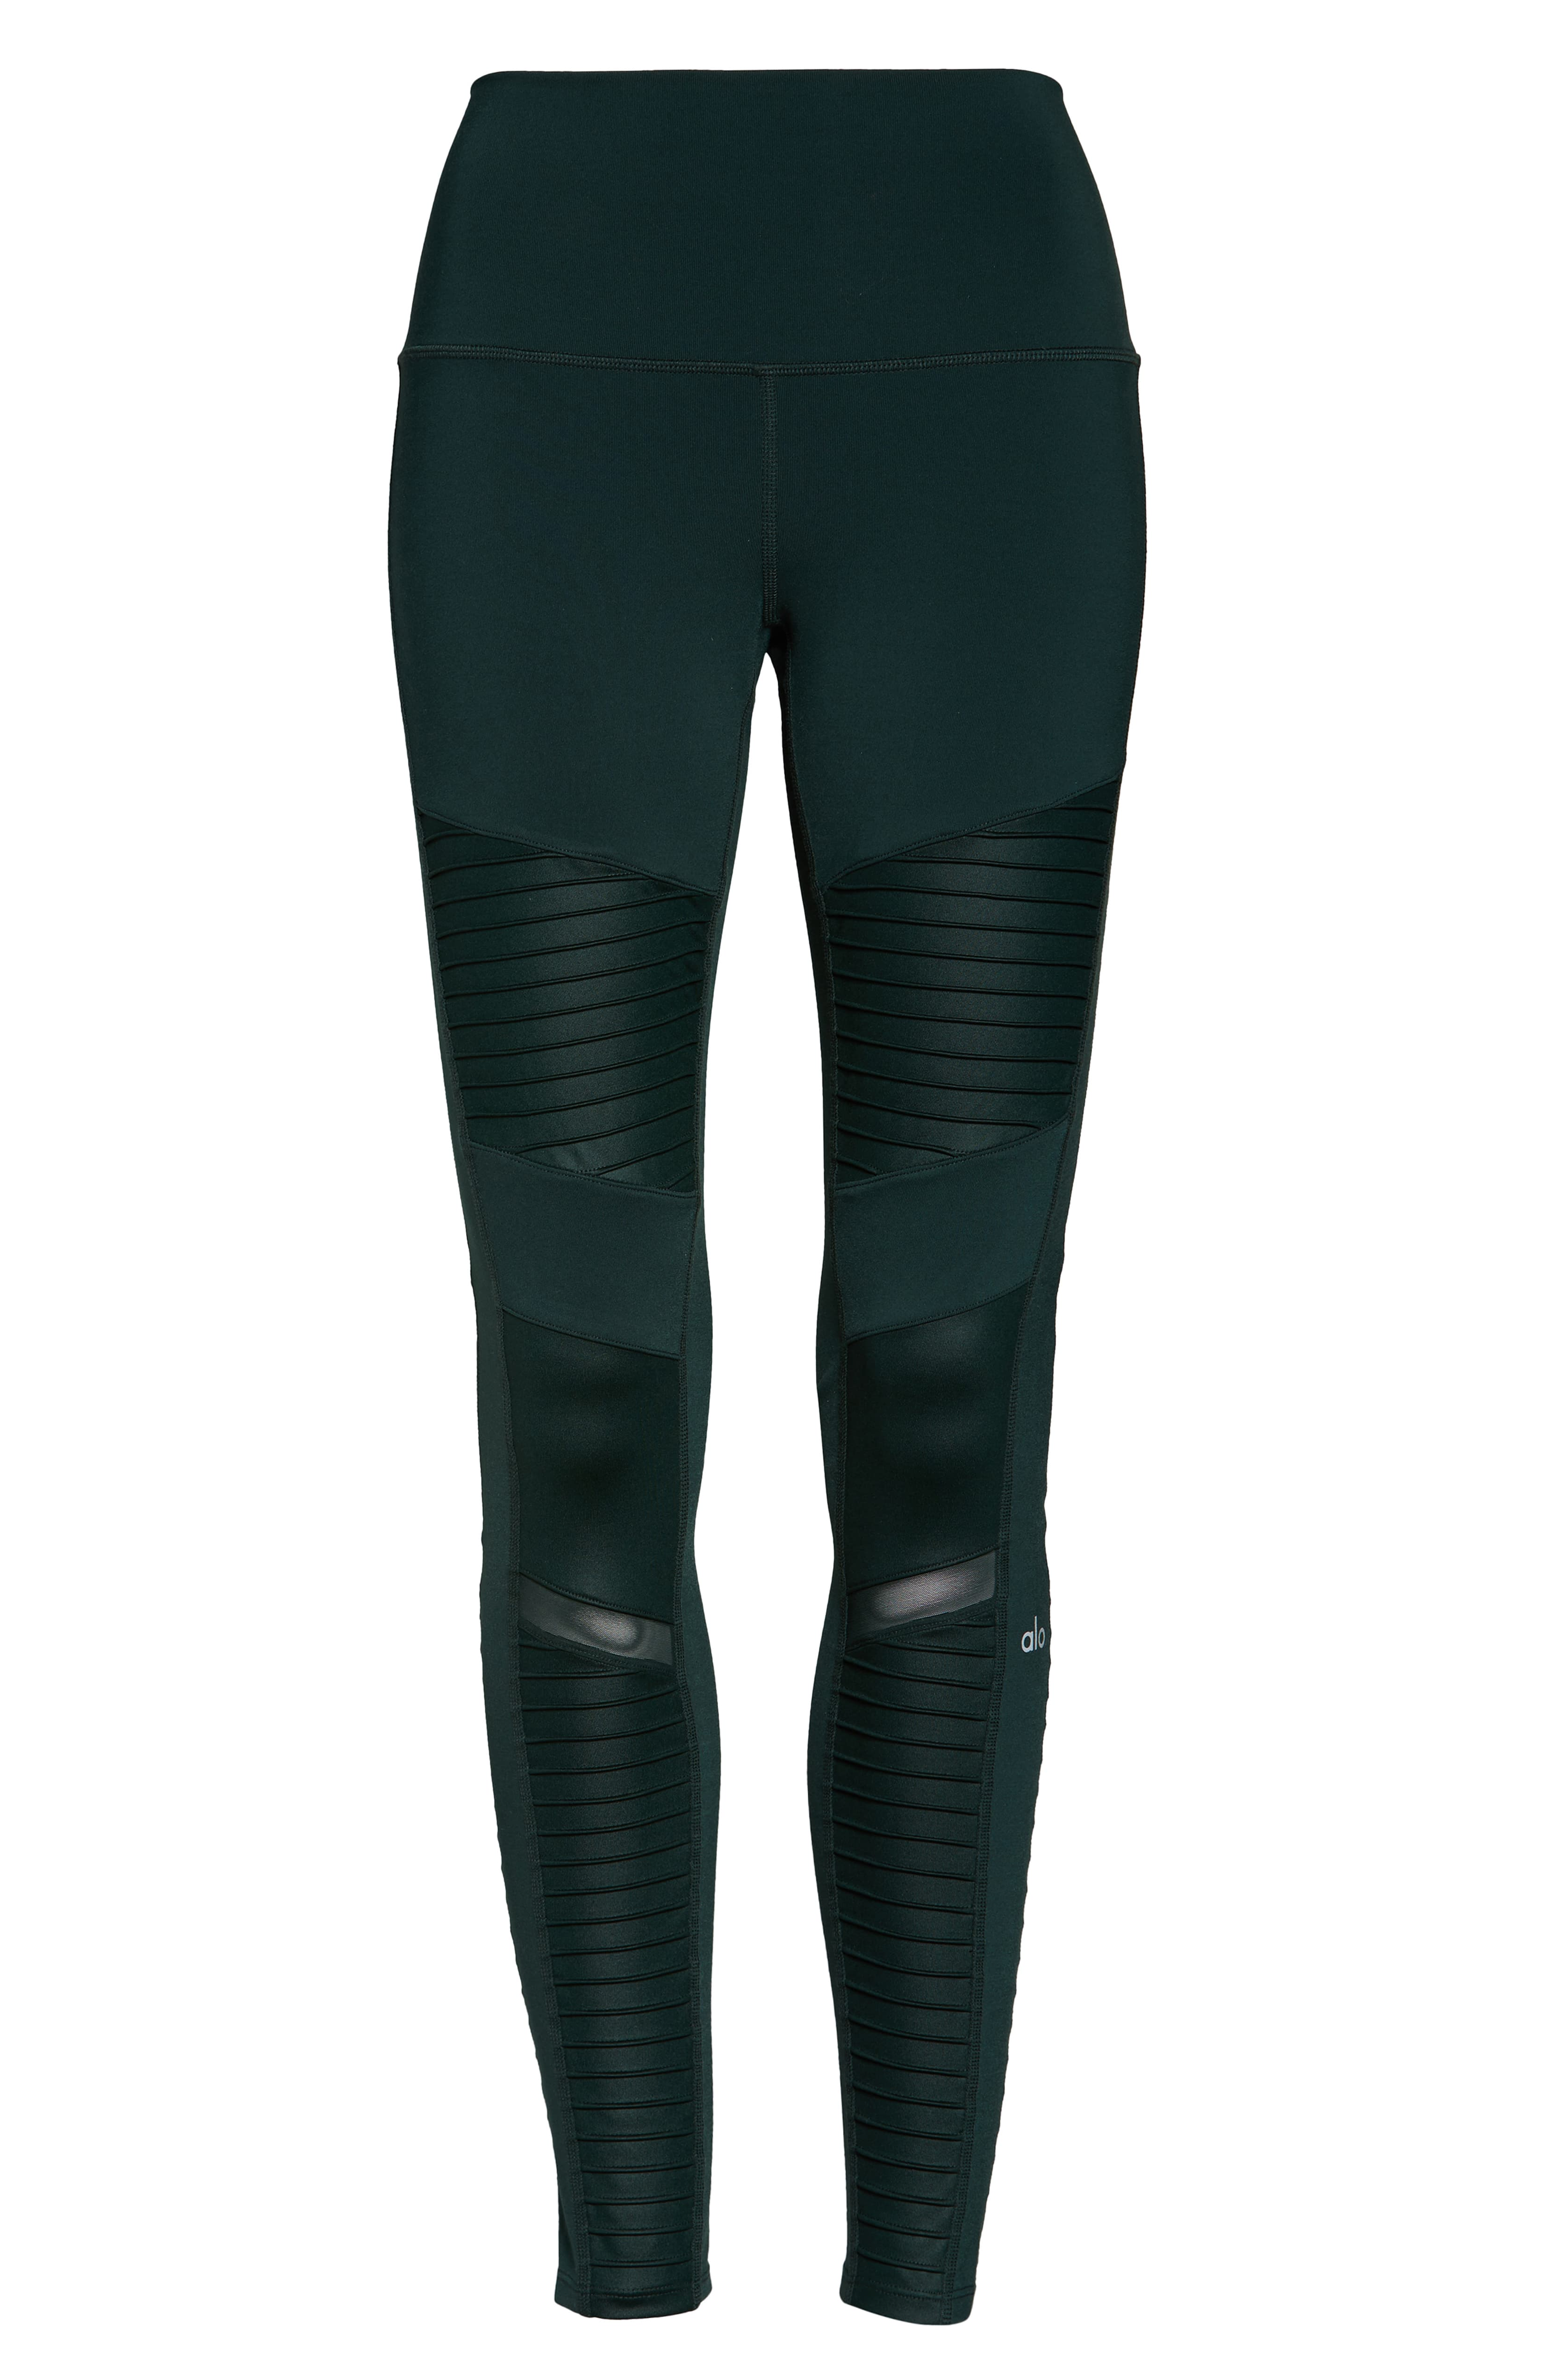 "Two words: HIGH WAIST. What Quarantine 15? Love the added detail to these{&nbsp;}<a  href=""https://www.nordstrom.com/s/alo-high-waist-moto-leggings/4409532?origin=keywordsearch-personalizedsort&breadcrumb=Home%2FAll%20Results&color=midnight"" target=""_blank"" title=""https://www.nordstrom.com/s/alo-high-waist-moto-leggings/4409532?origin=keywordsearch-personalizedsort&breadcrumb=Home%2FAll%20Results&color=midnight"">ALO High Waist Moto Leggings{&nbsp;}</a>- $75.90 (after Sale - $114) (Image: Nordstrom)"